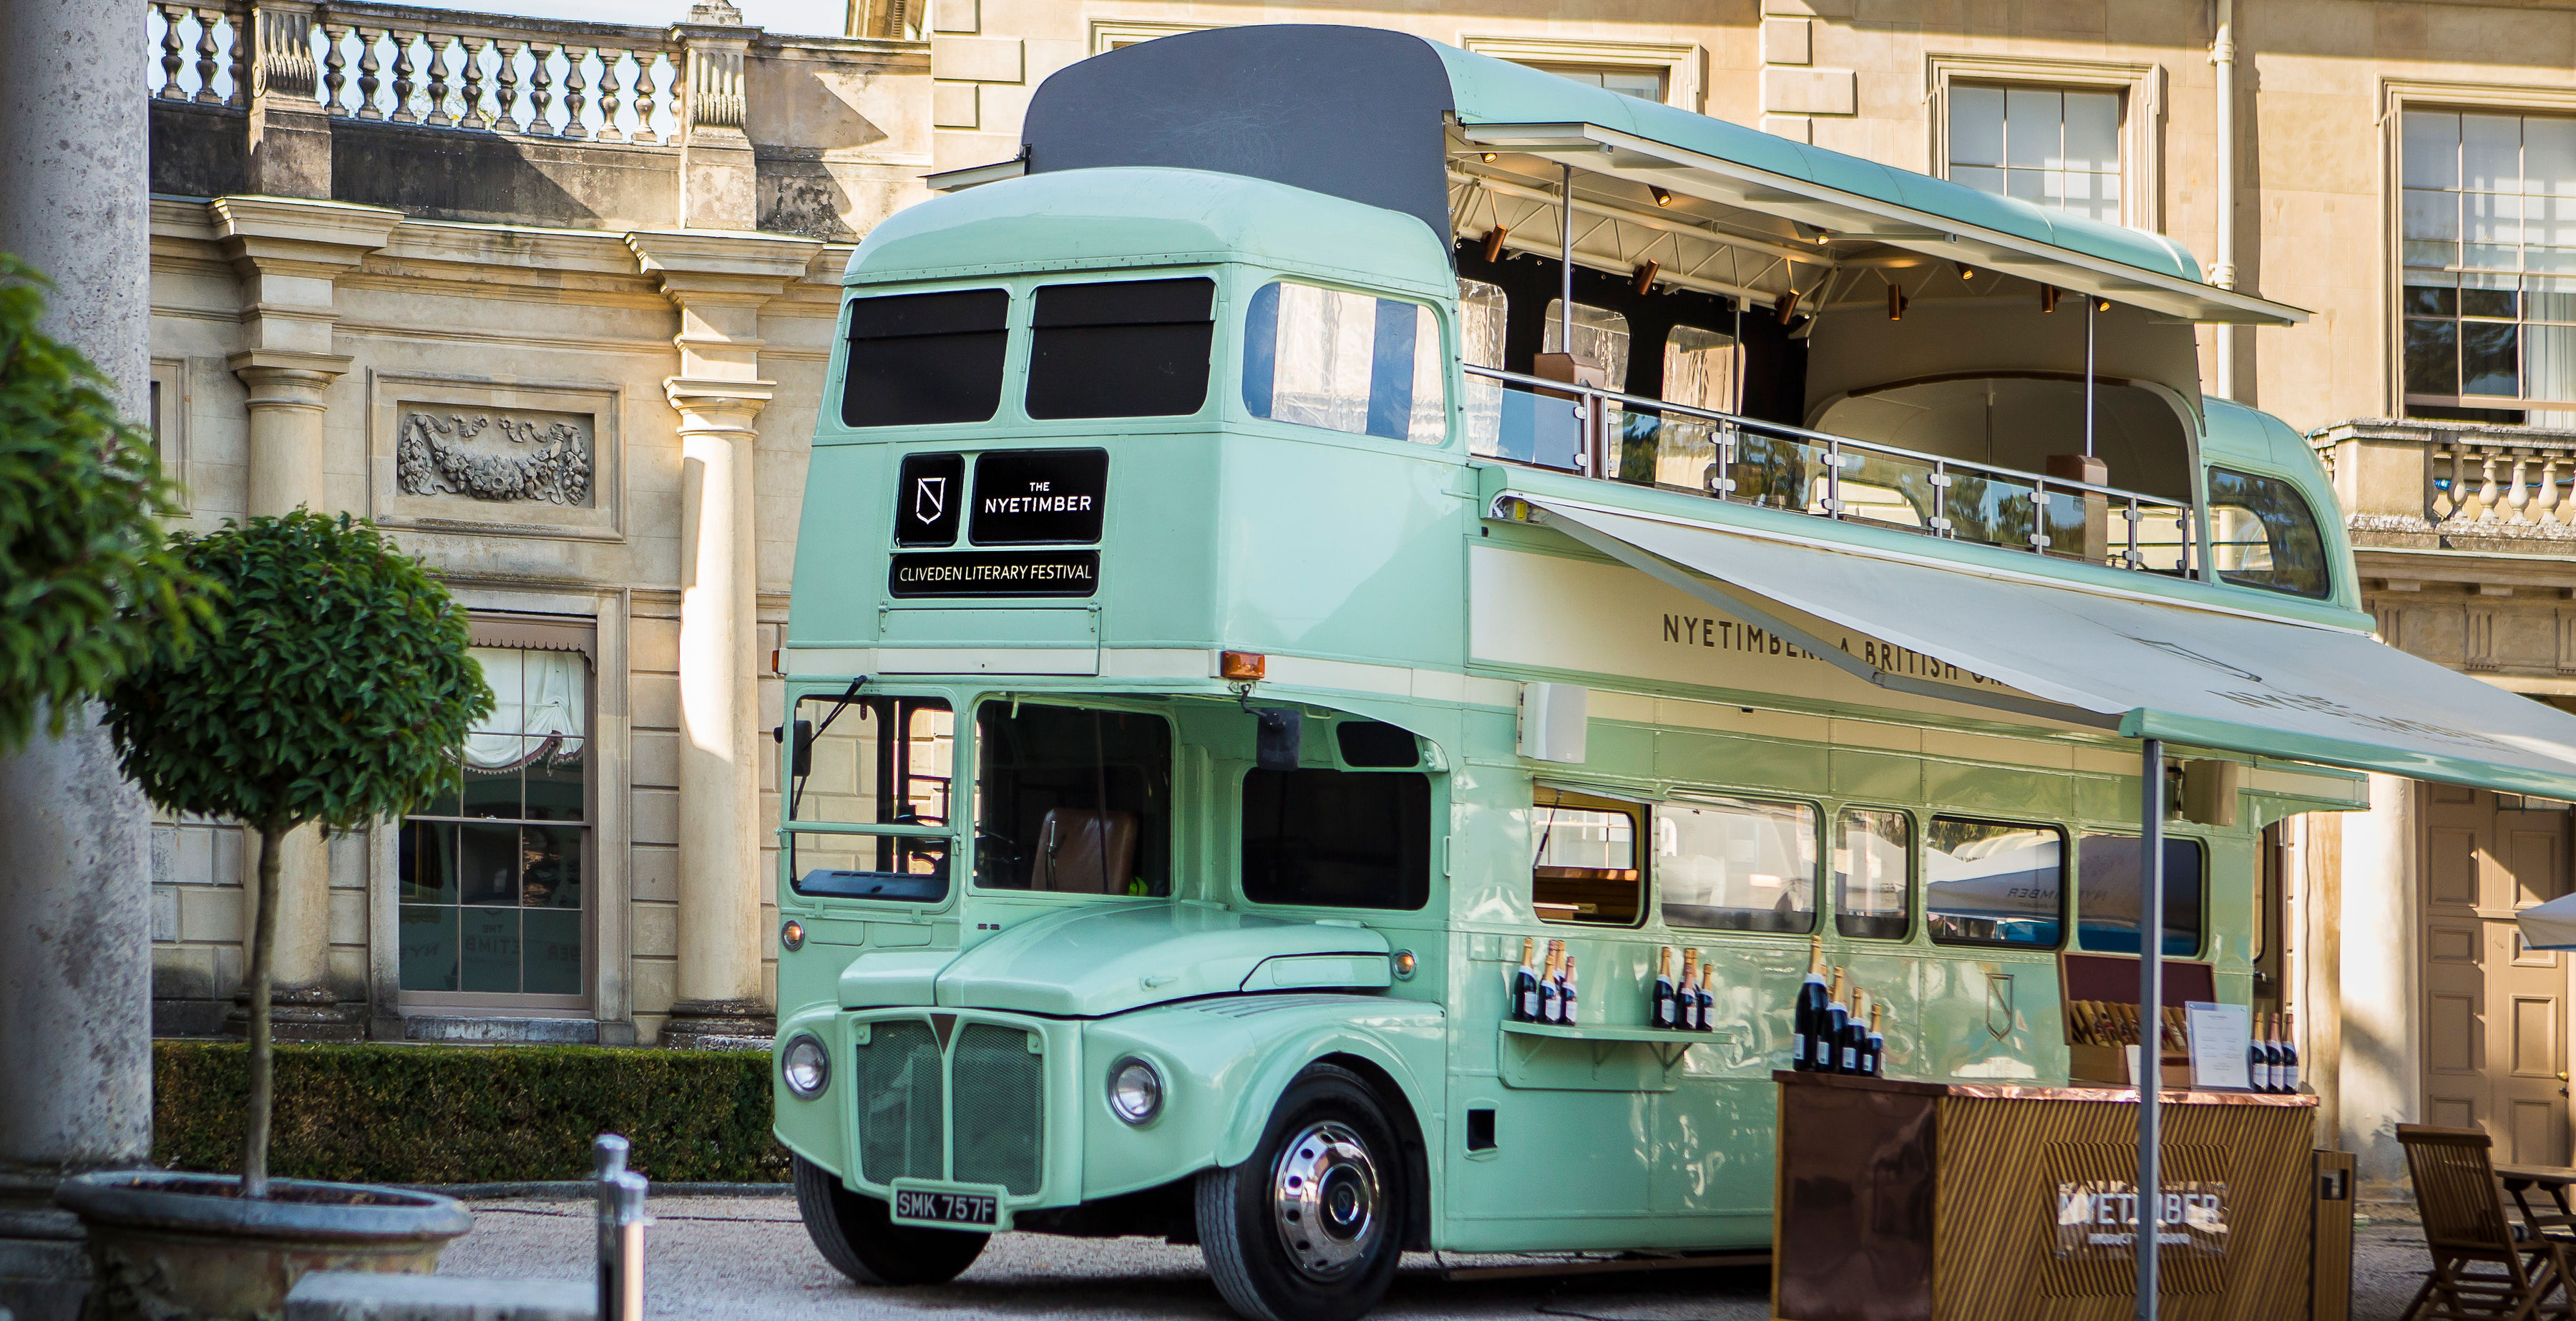 Wiltons and The Nyetimber Bus Experience